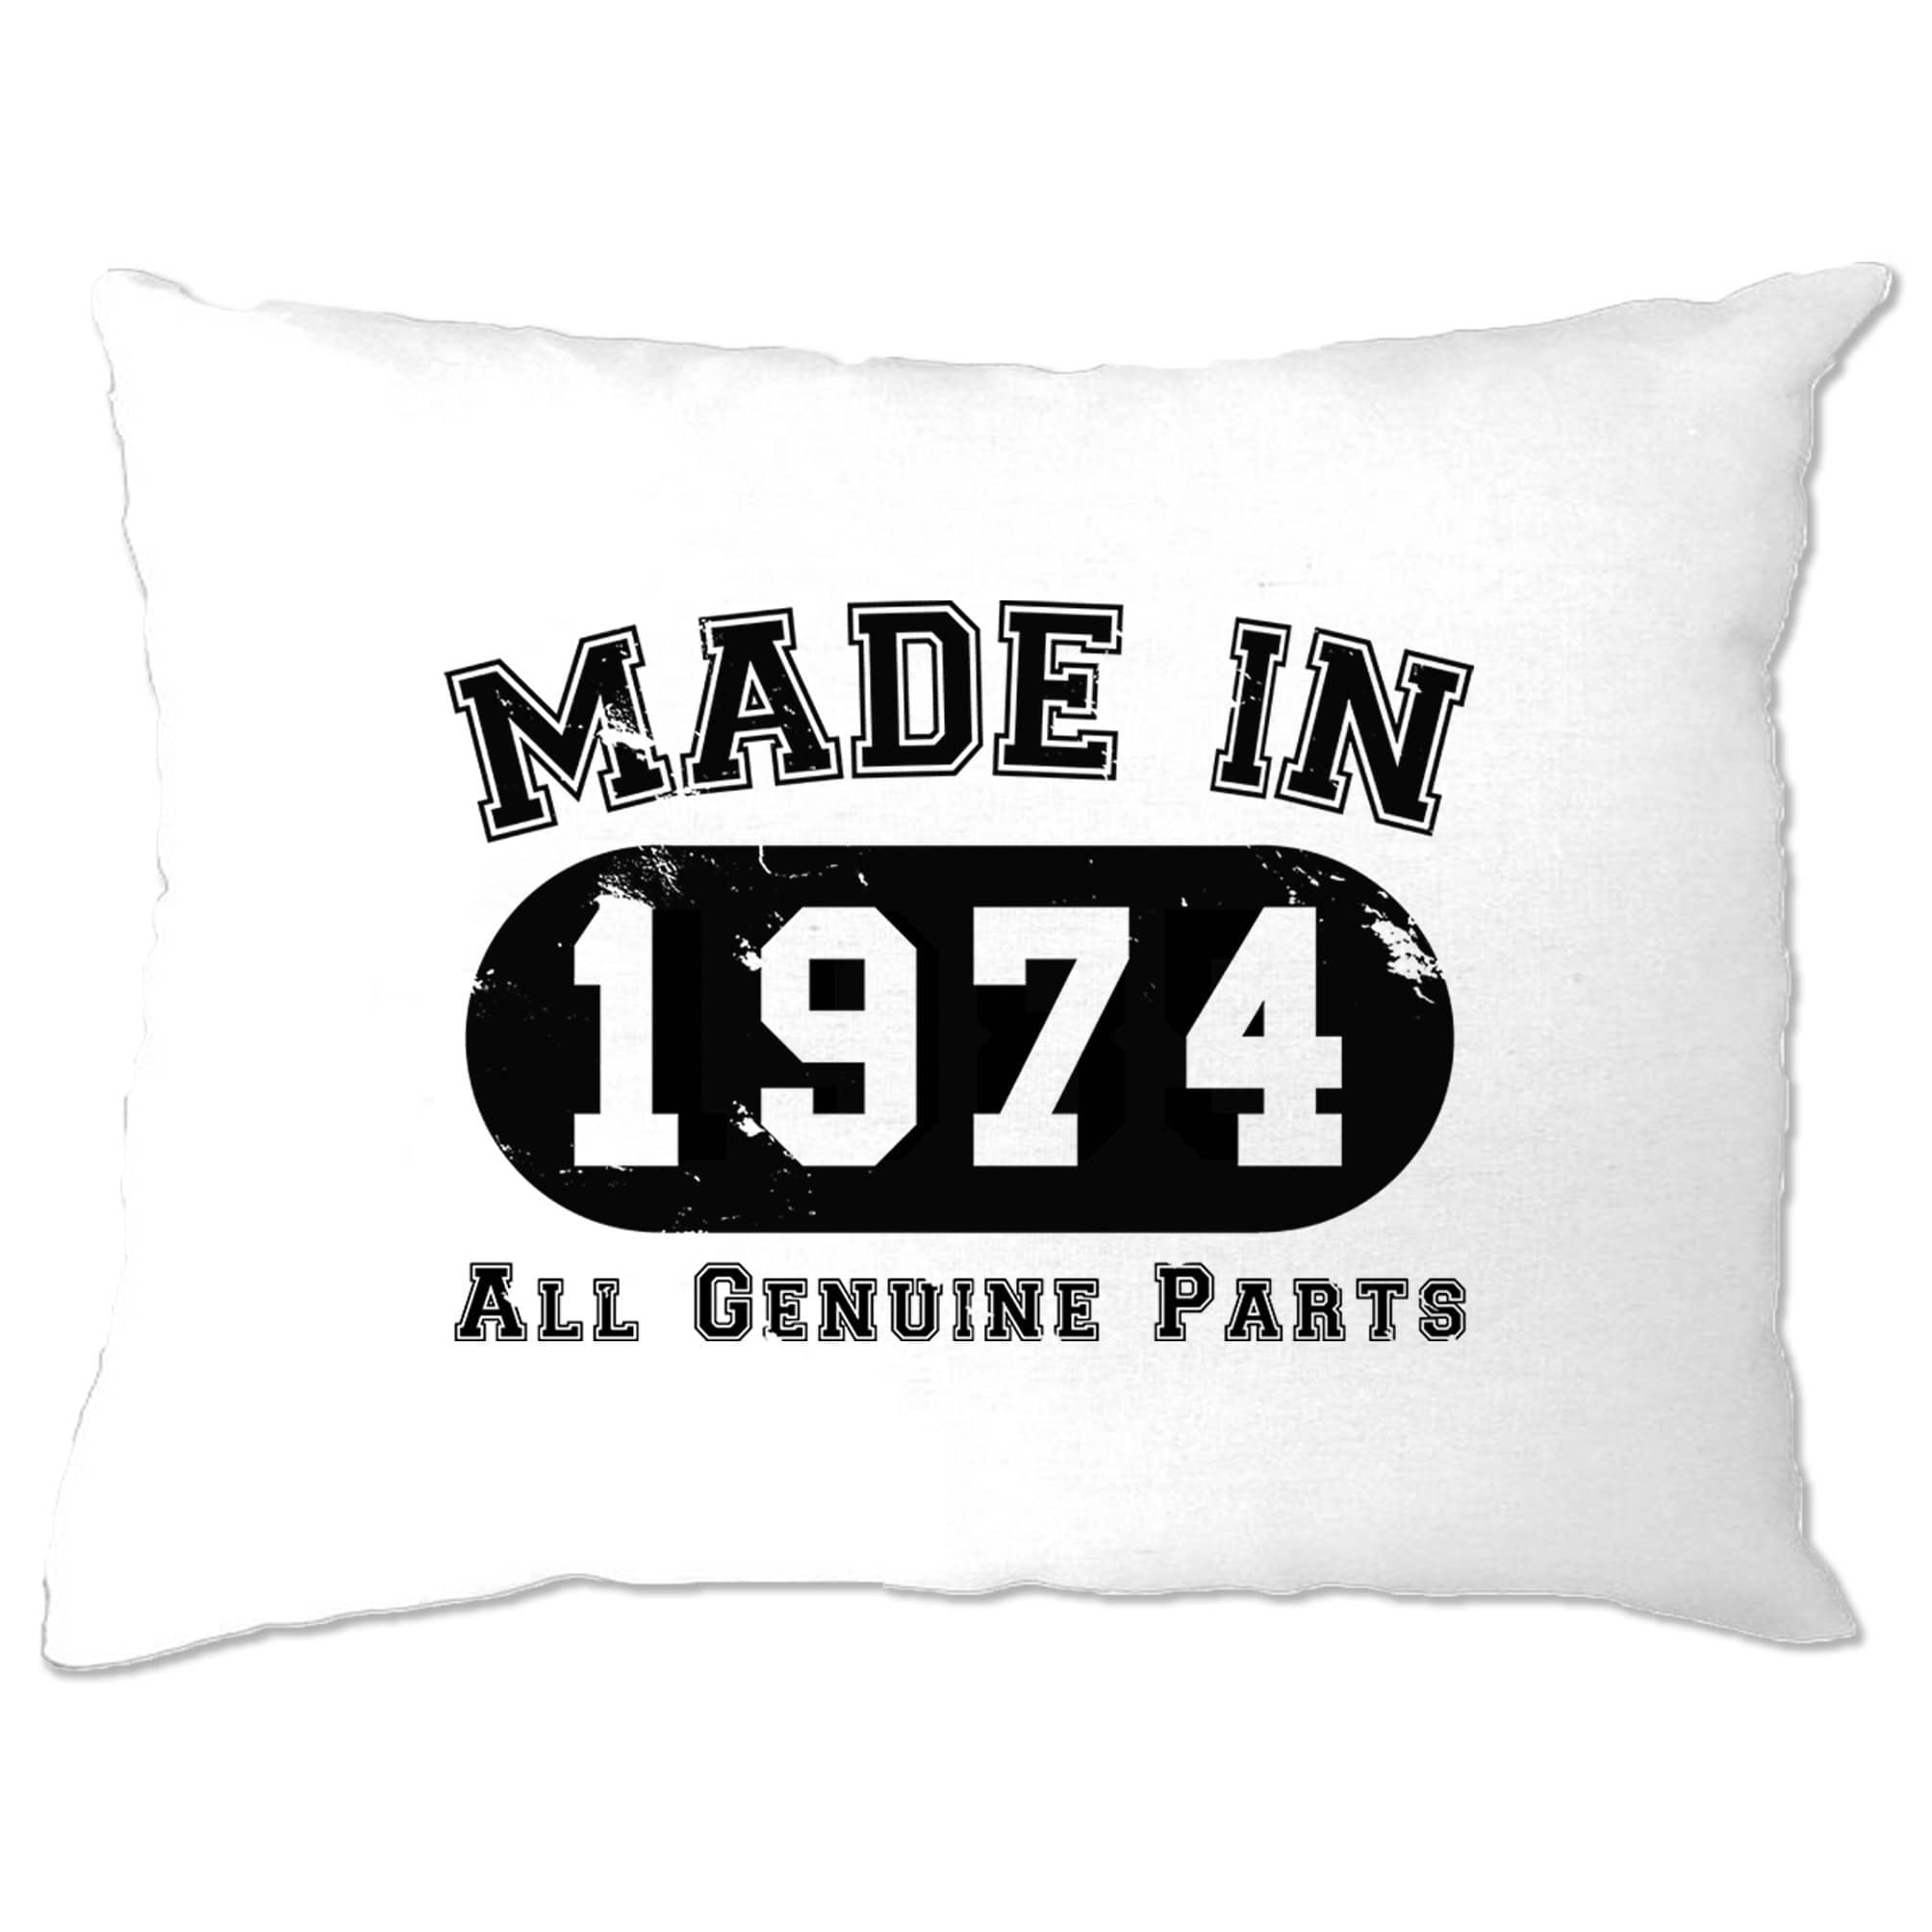 Birthday Pillow Case Made in 1974 All Genuine Parts